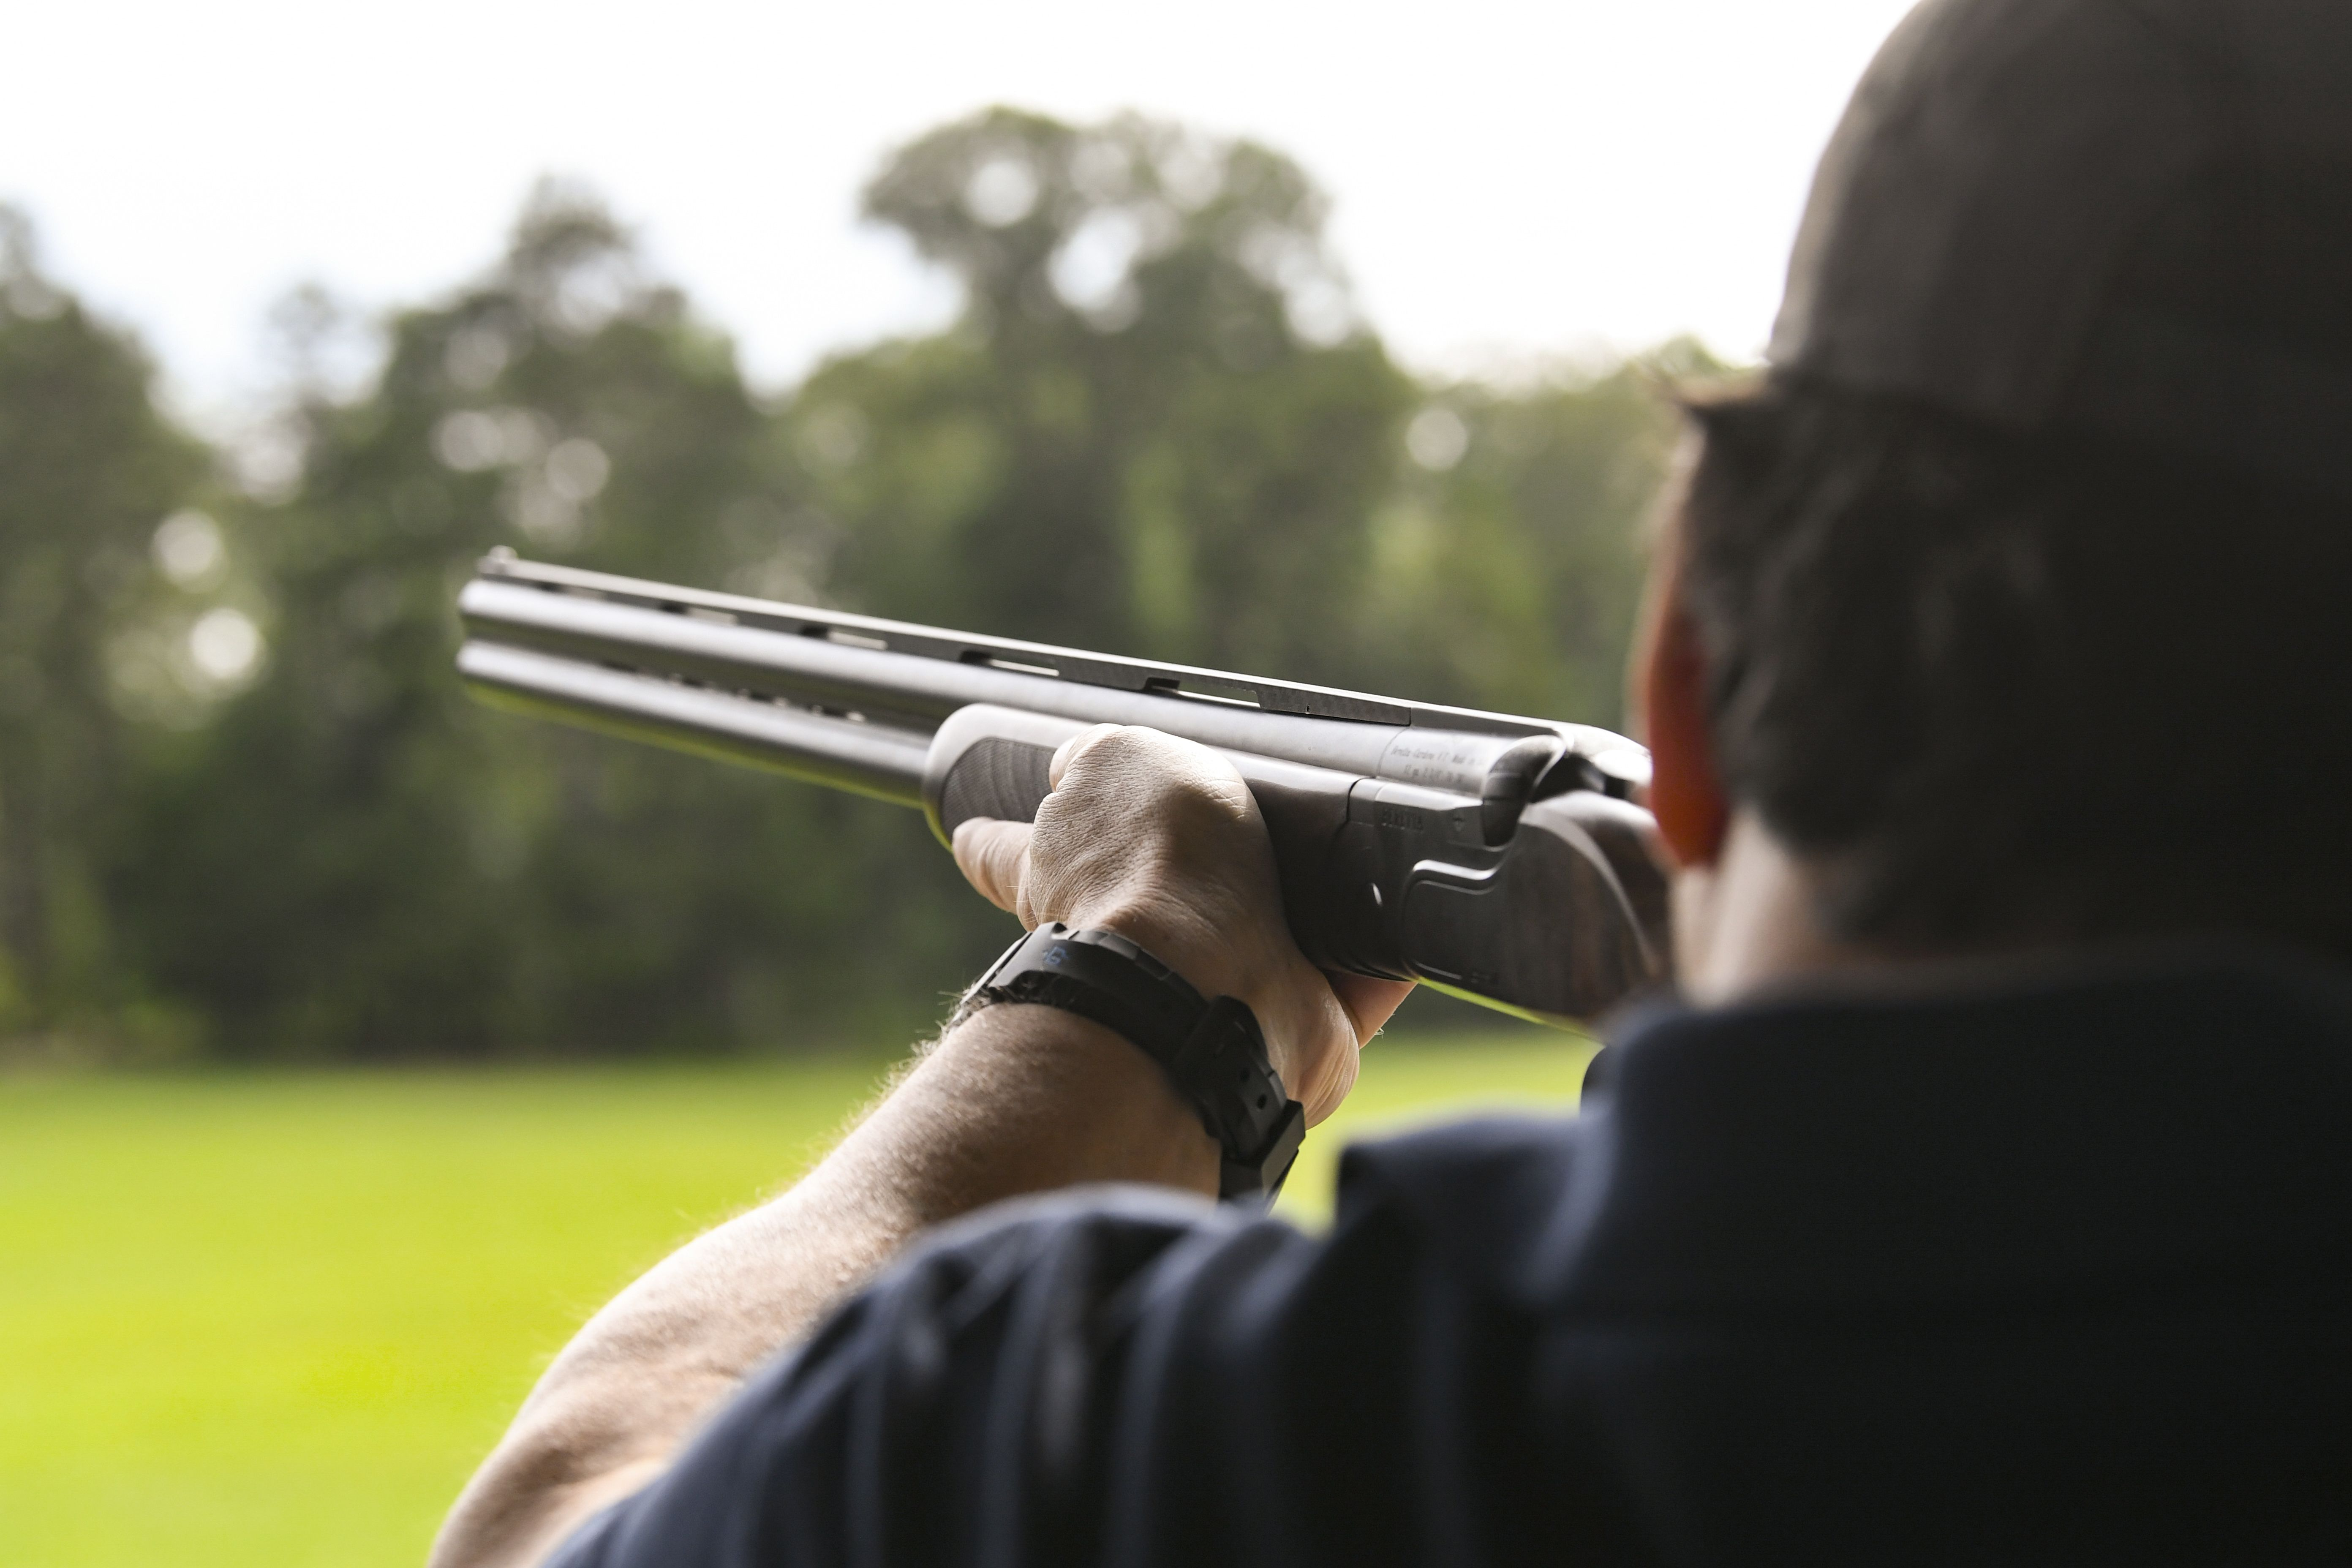 Pin on Beretta Shooting Grounds by High Adventure Company